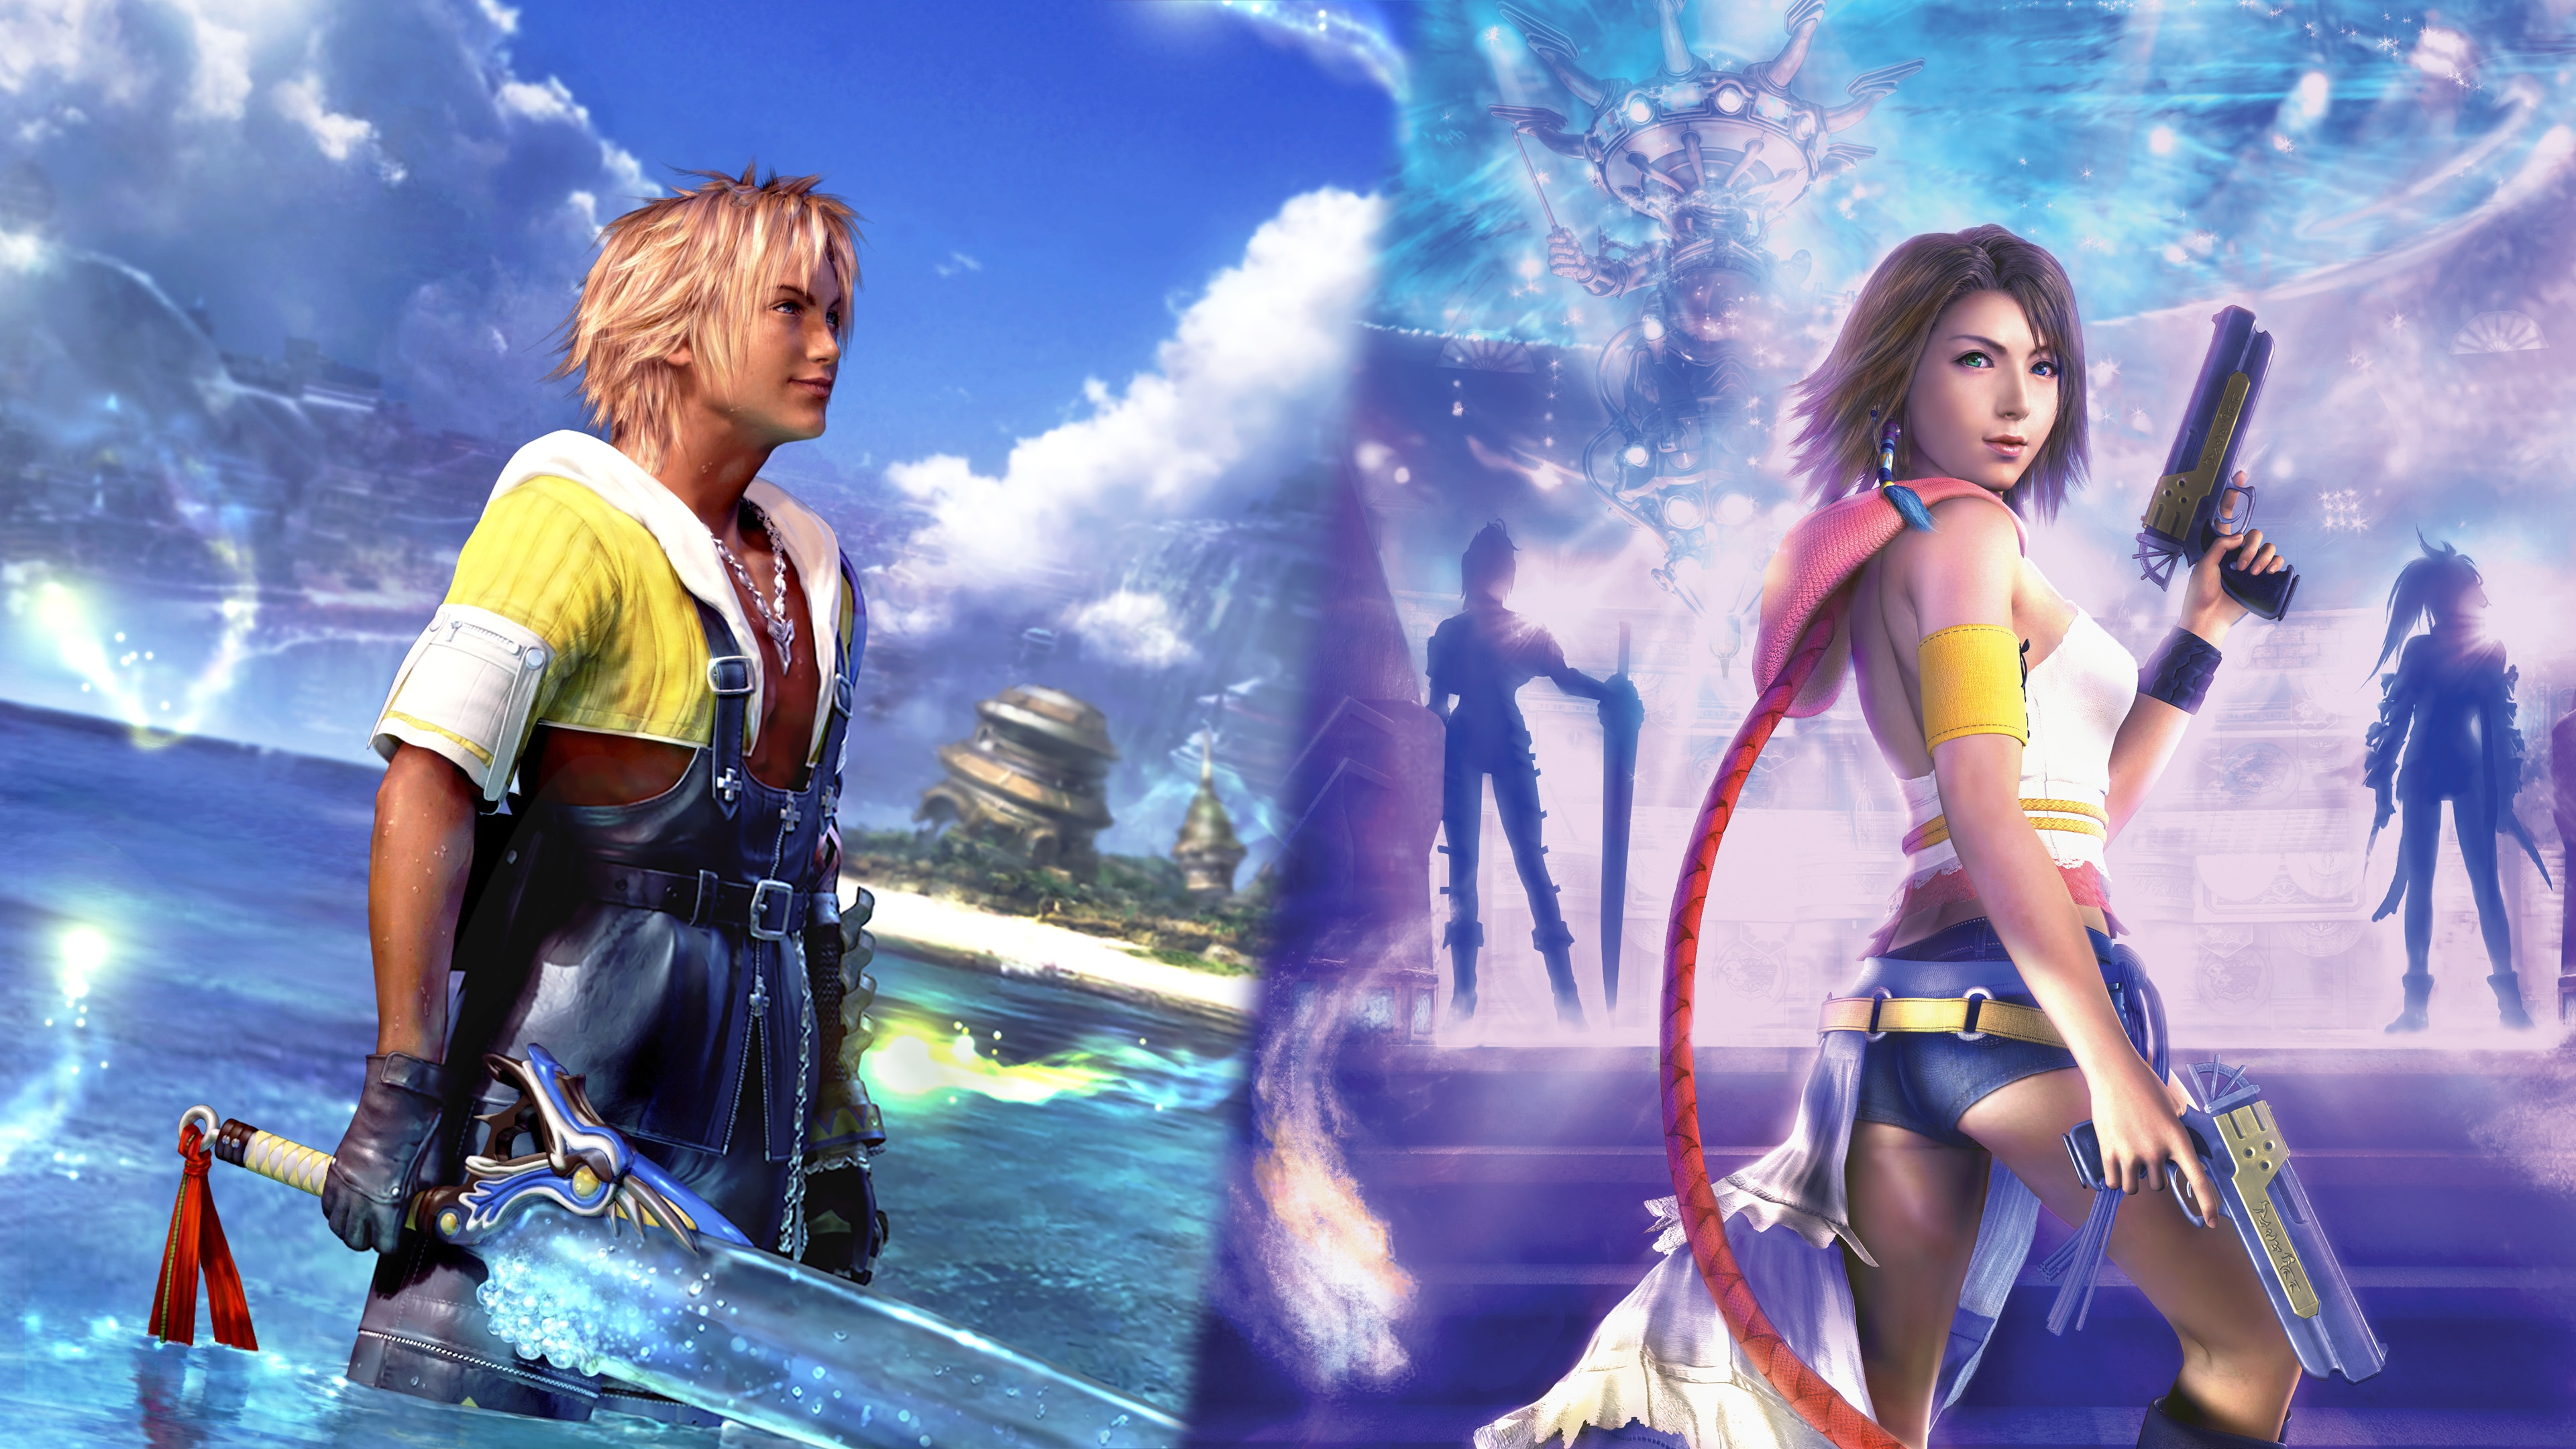 FINAL FANTASY X/X-2 HD Remaster